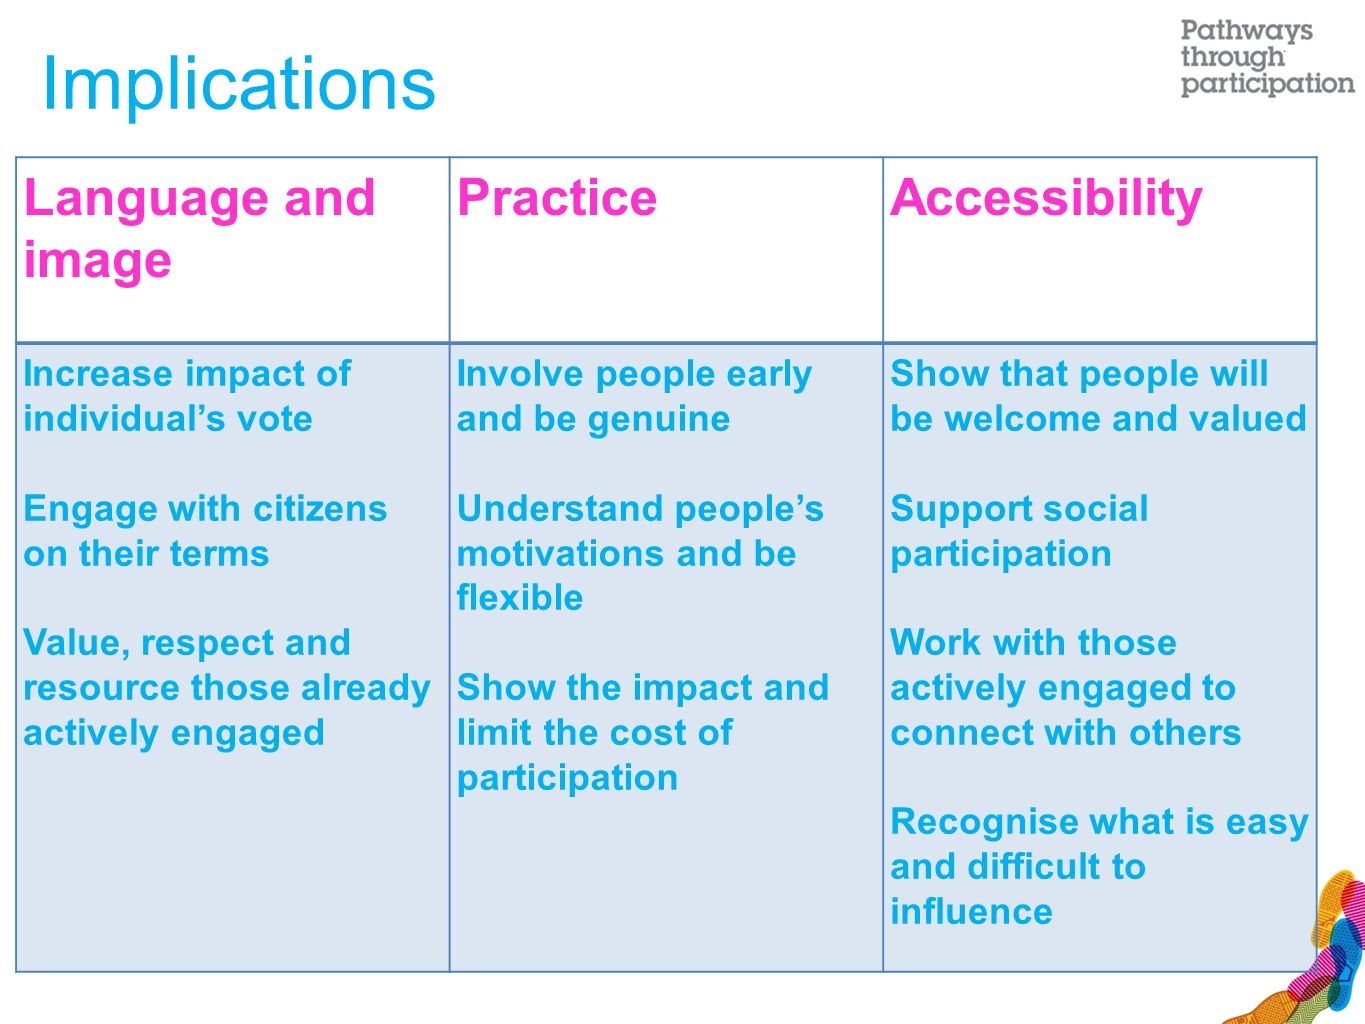 Language and image PracticeAccessibility Increase impact of individual's vote Engage with citizens on their terms Value, respect and resource those already actively engaged Involve people early and be genuine Understand people's motivations and be flexible Show the impact and limit the cost of participation Show that people will be welcome and valued Support social participation Work with those actively engaged to connect with others Recognise what is easy and difficult to influence Implications